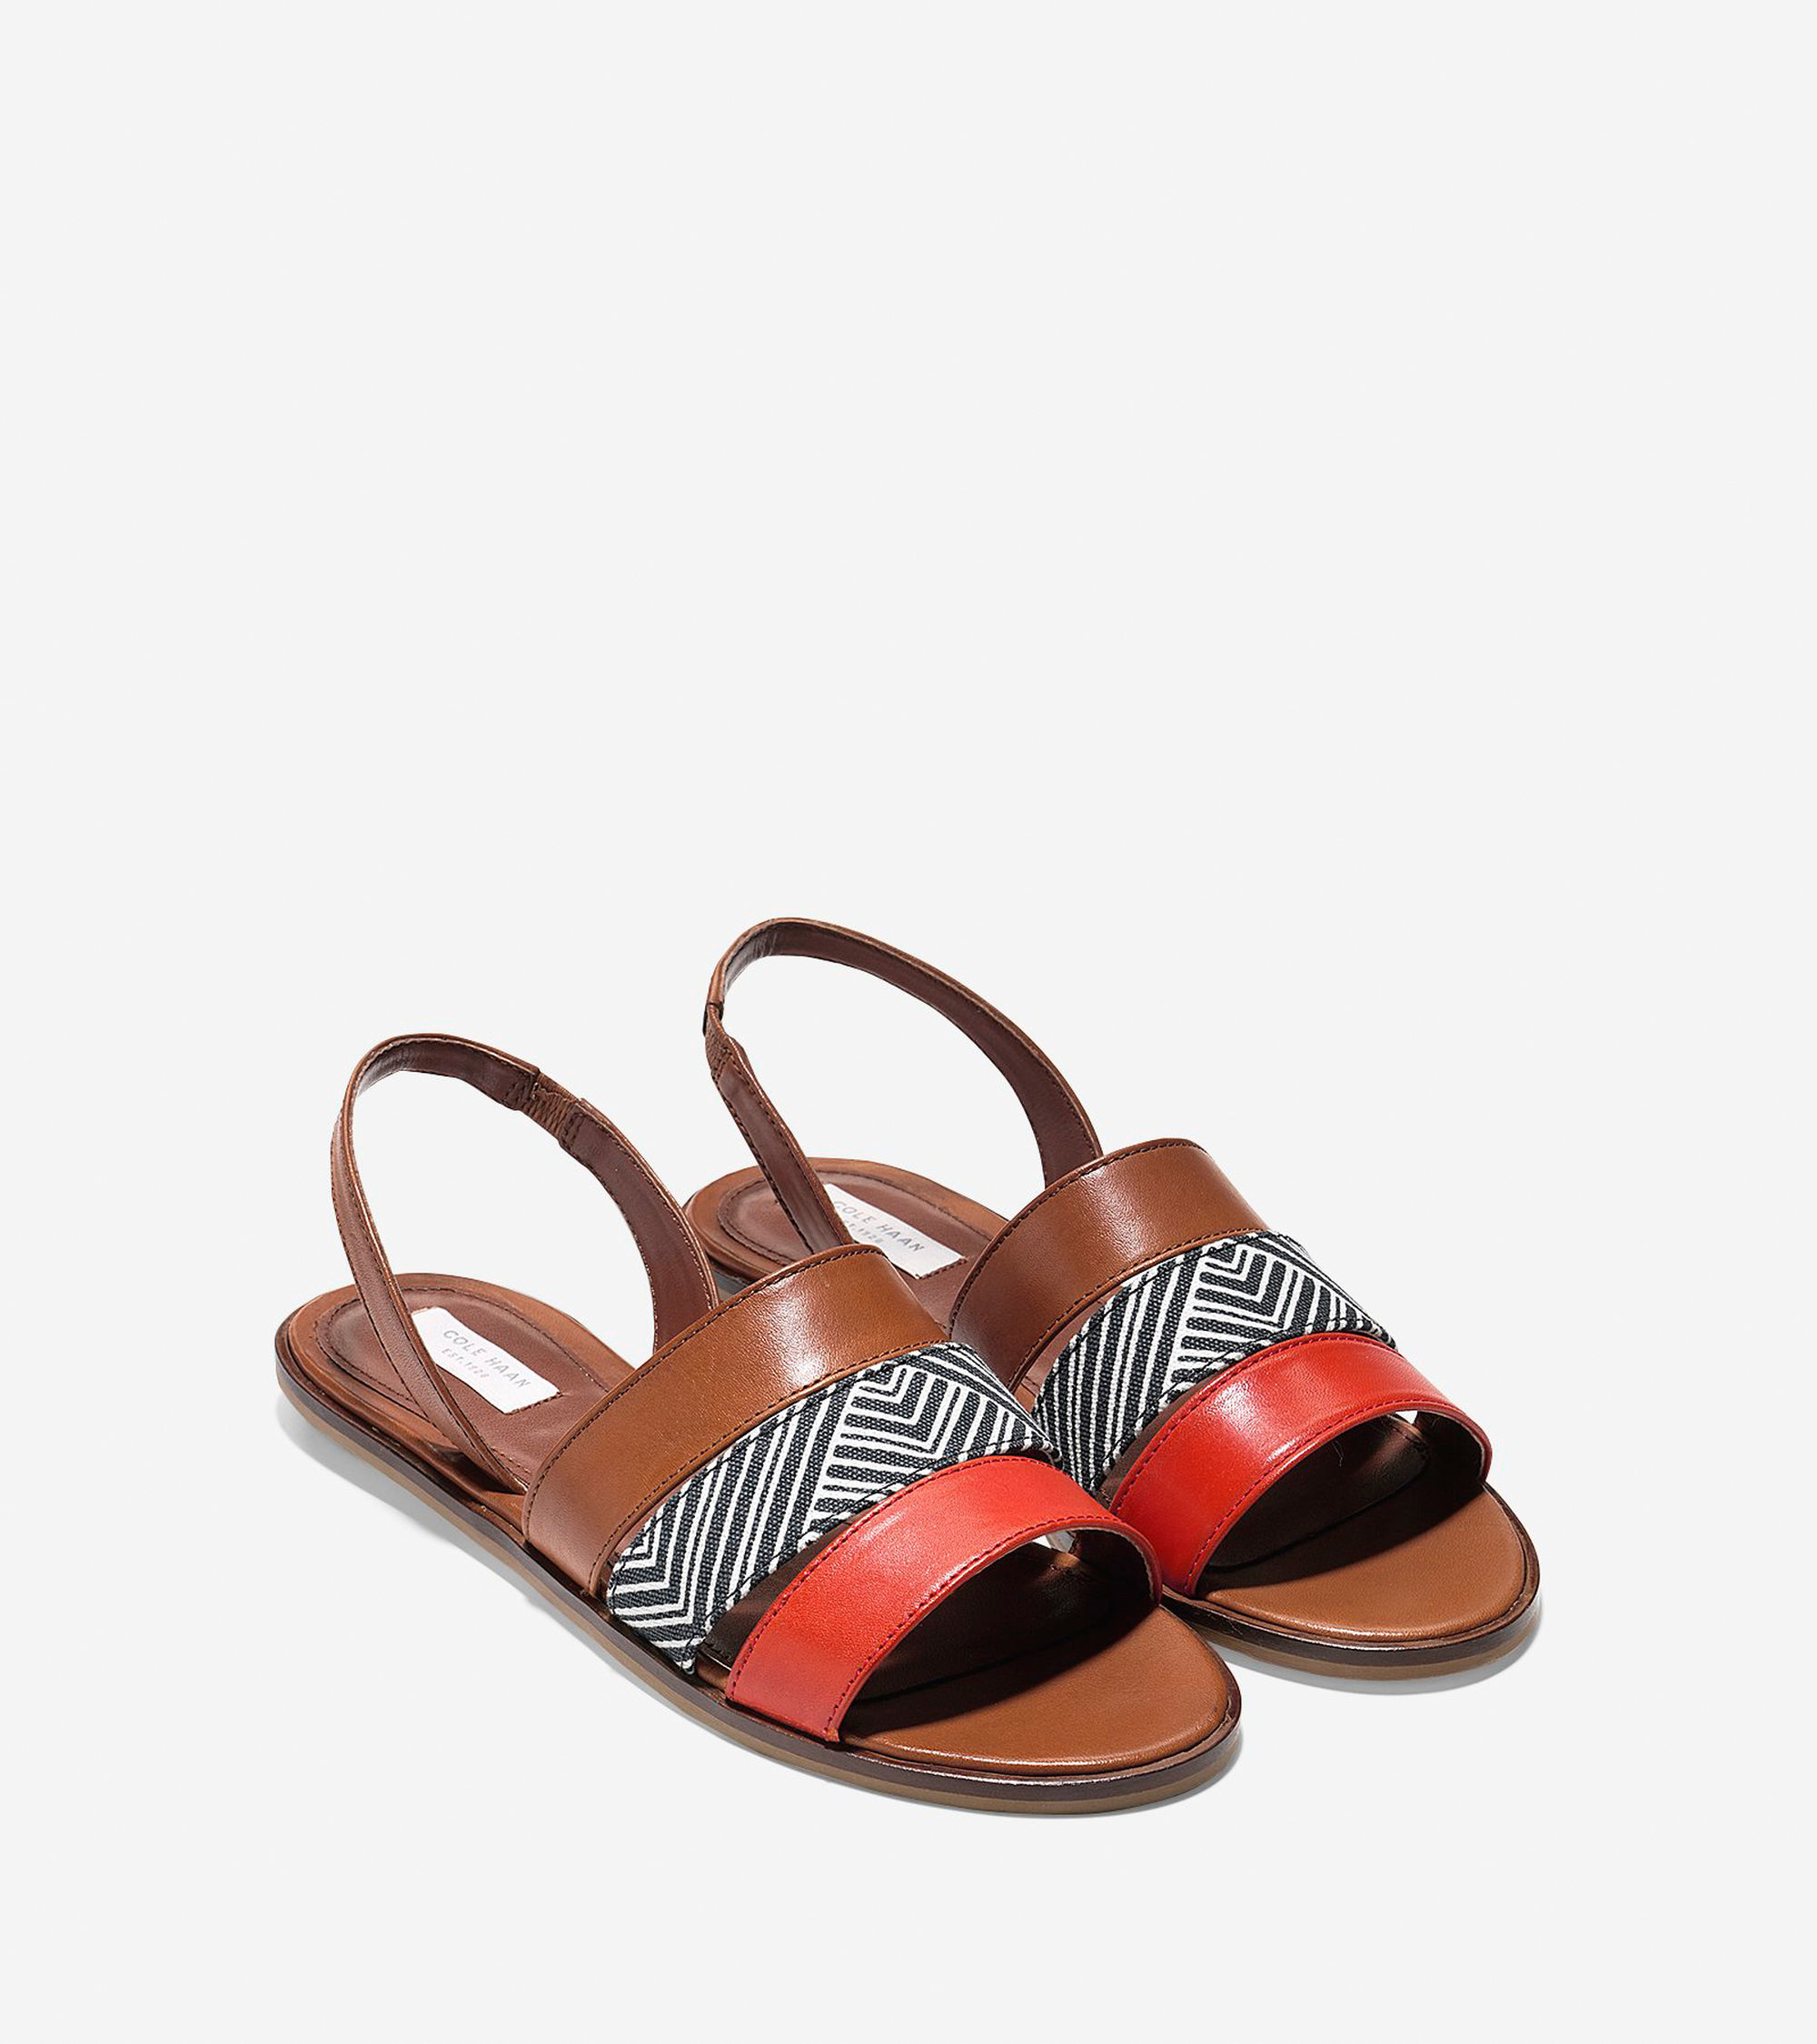 Awesome Cole Haan Shoes  Women Shoes